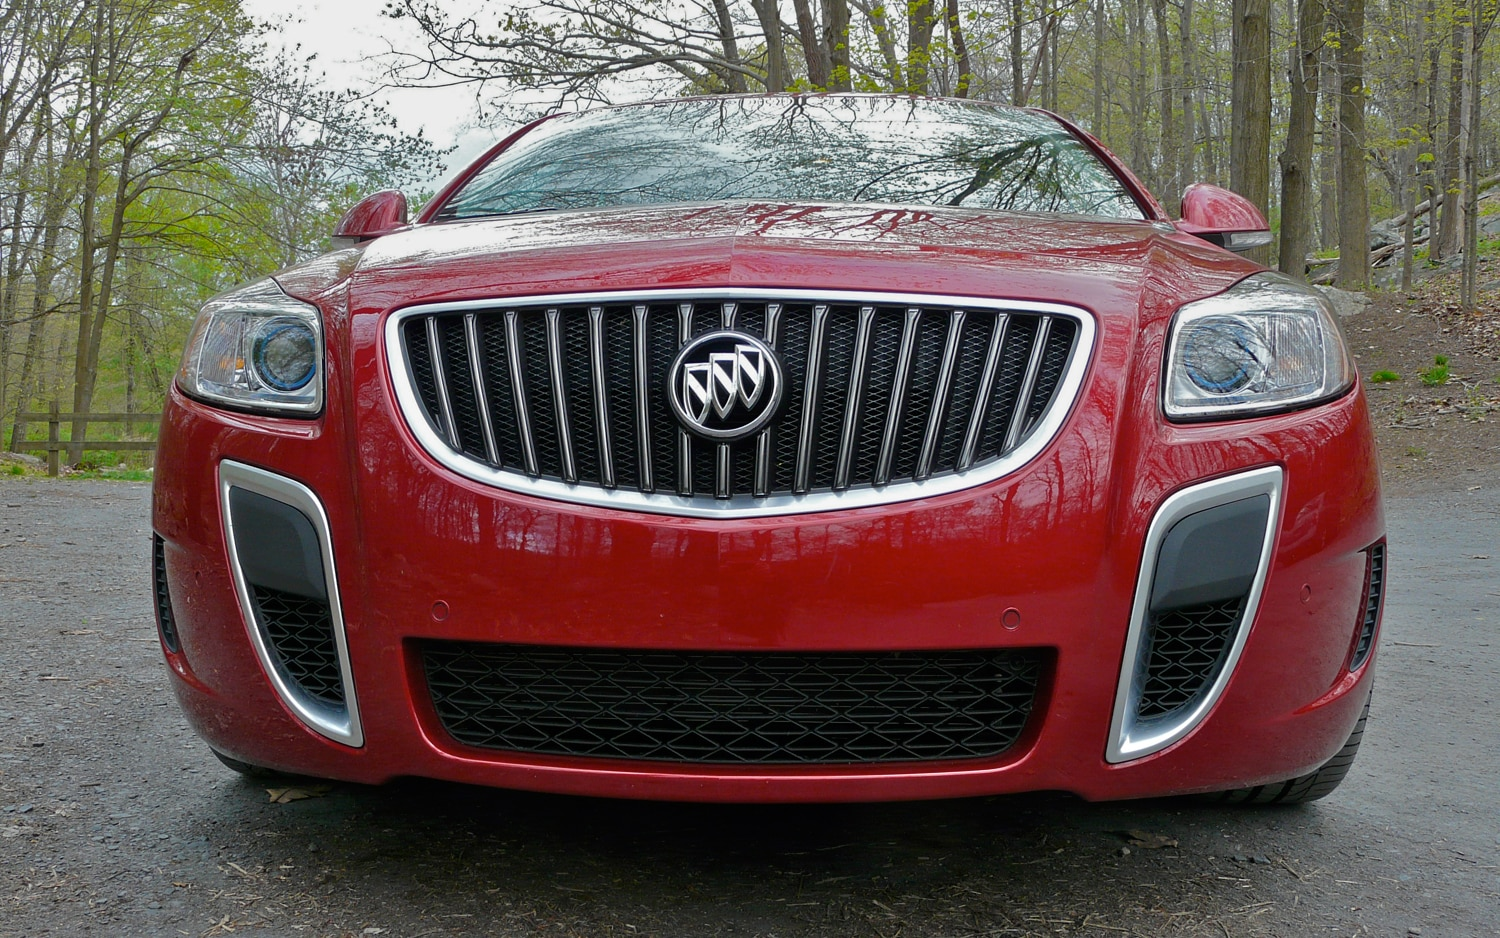 2012 Buick Regal GS Front View1